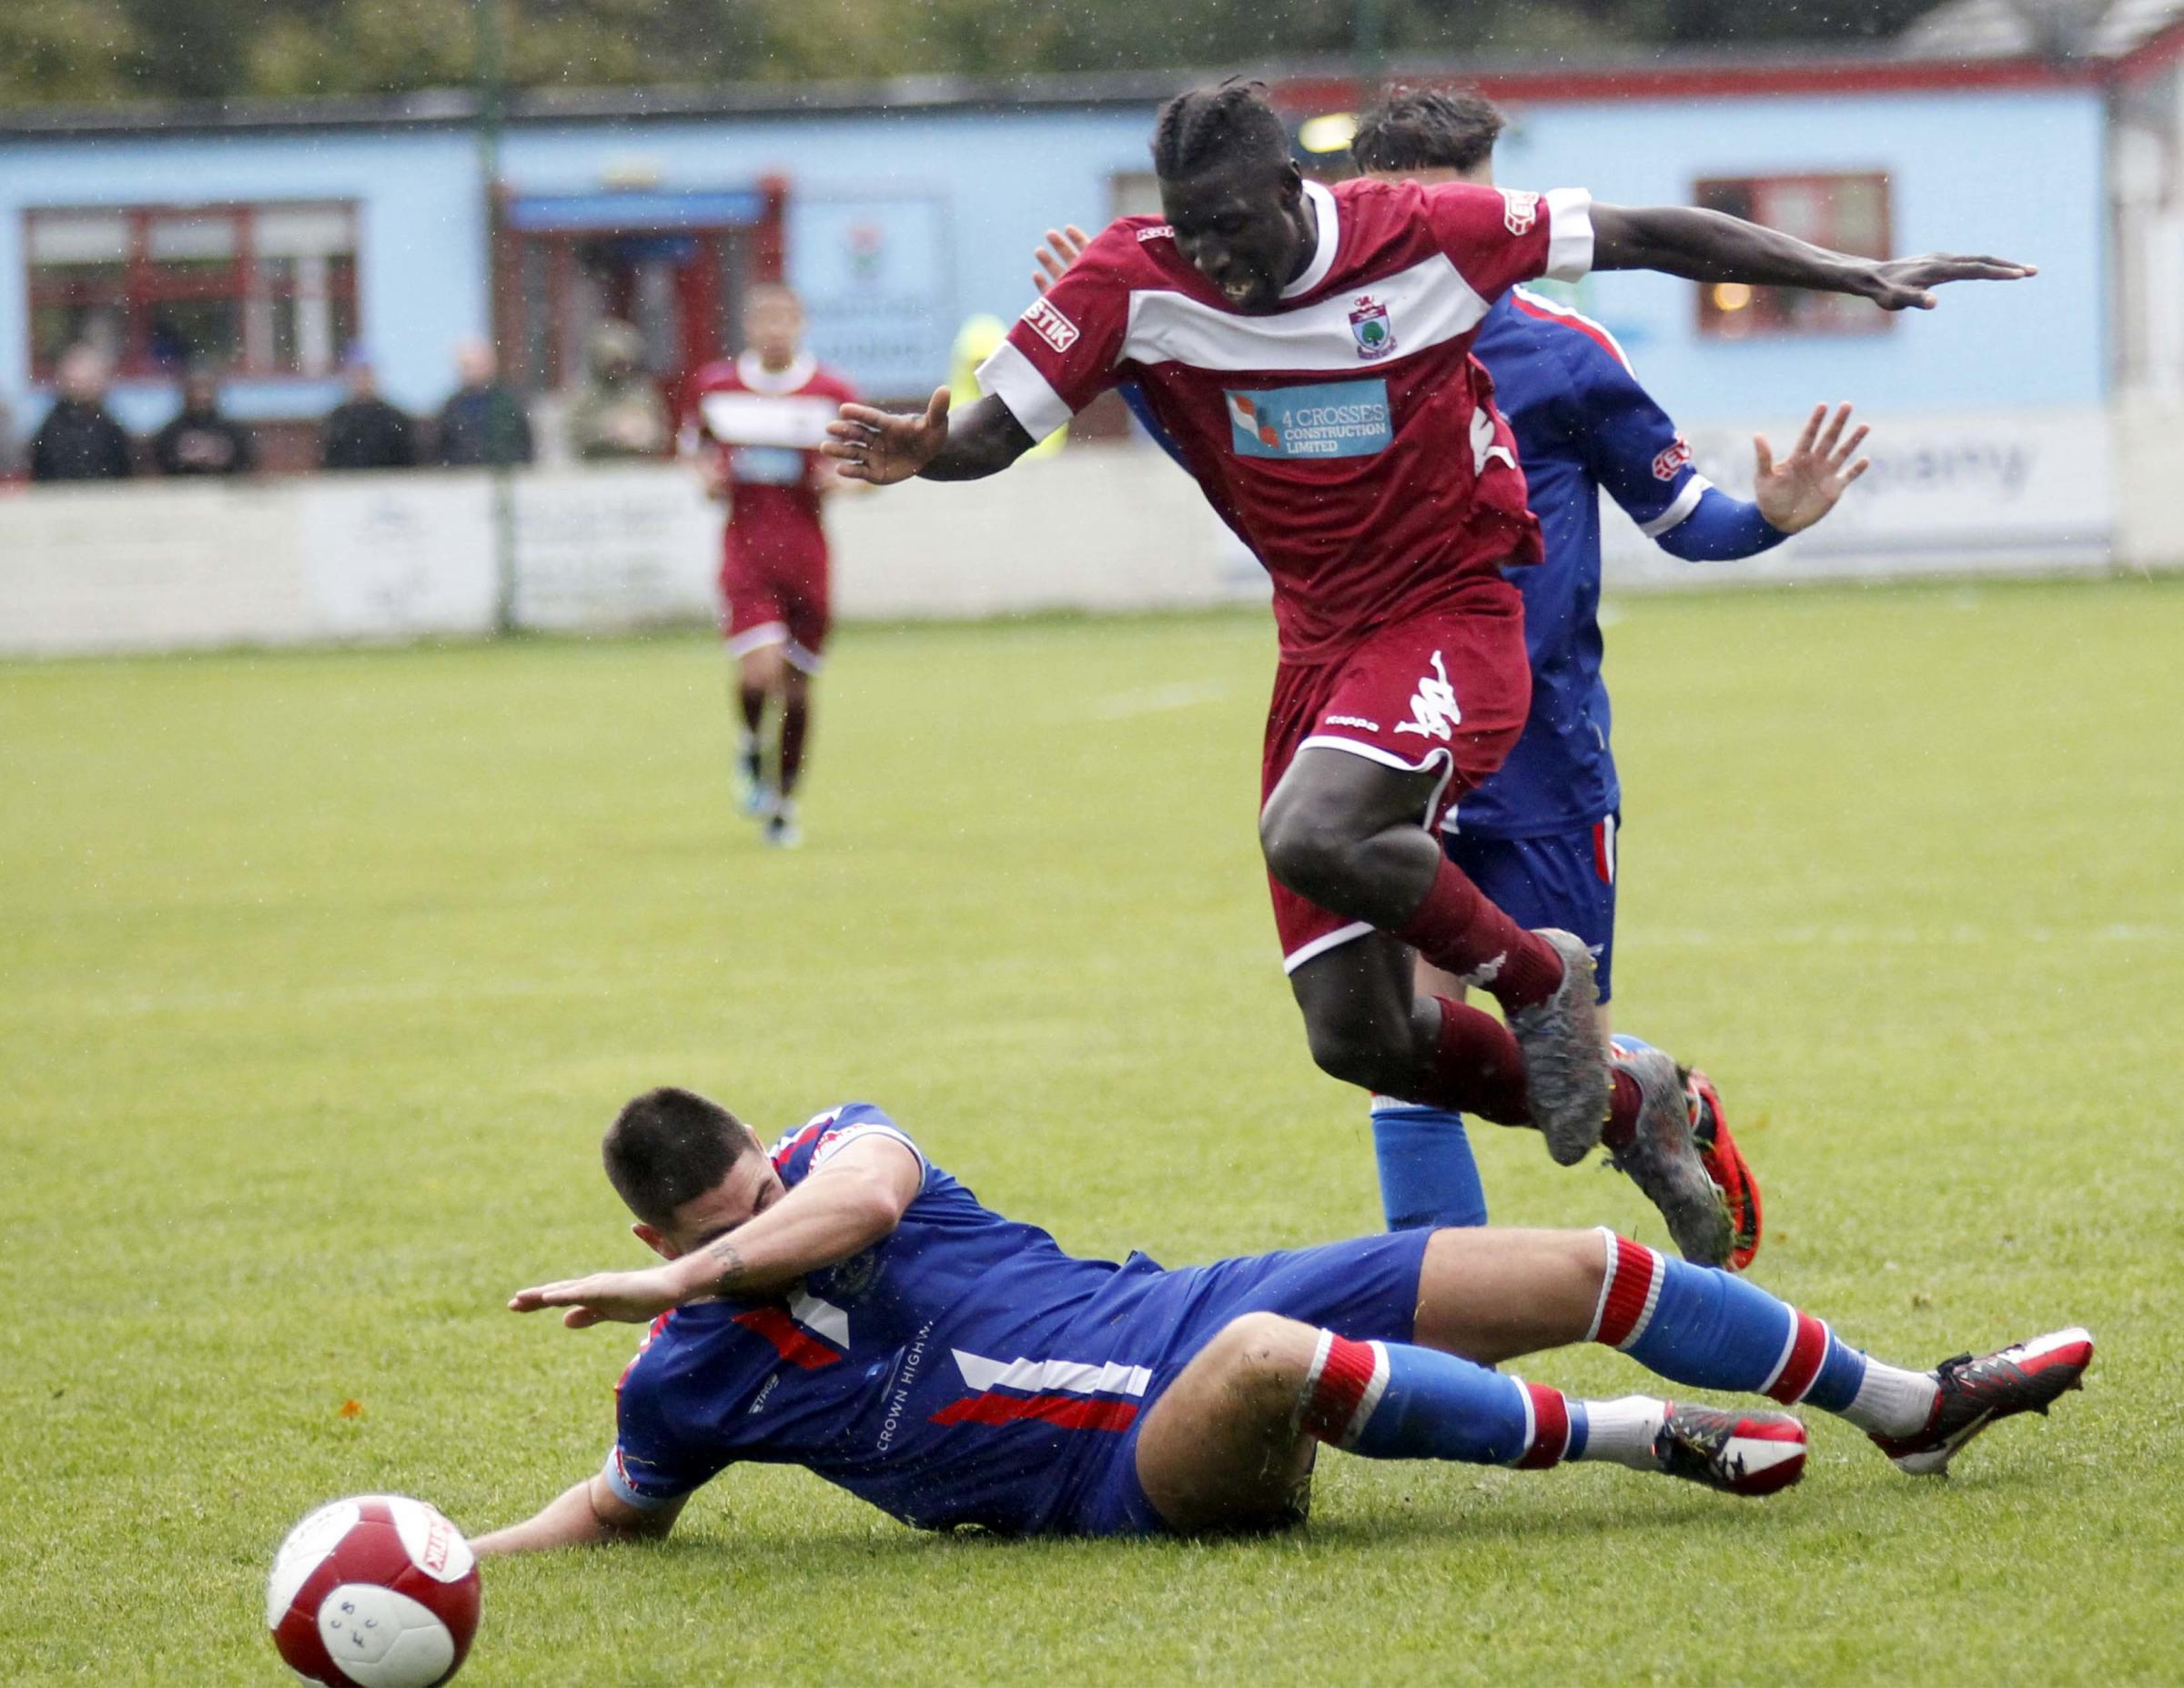 Lassana Mendes set up Astley Mulholland's leveller Colwyn Bay against Droylsden (Photo by Dave Thomas)